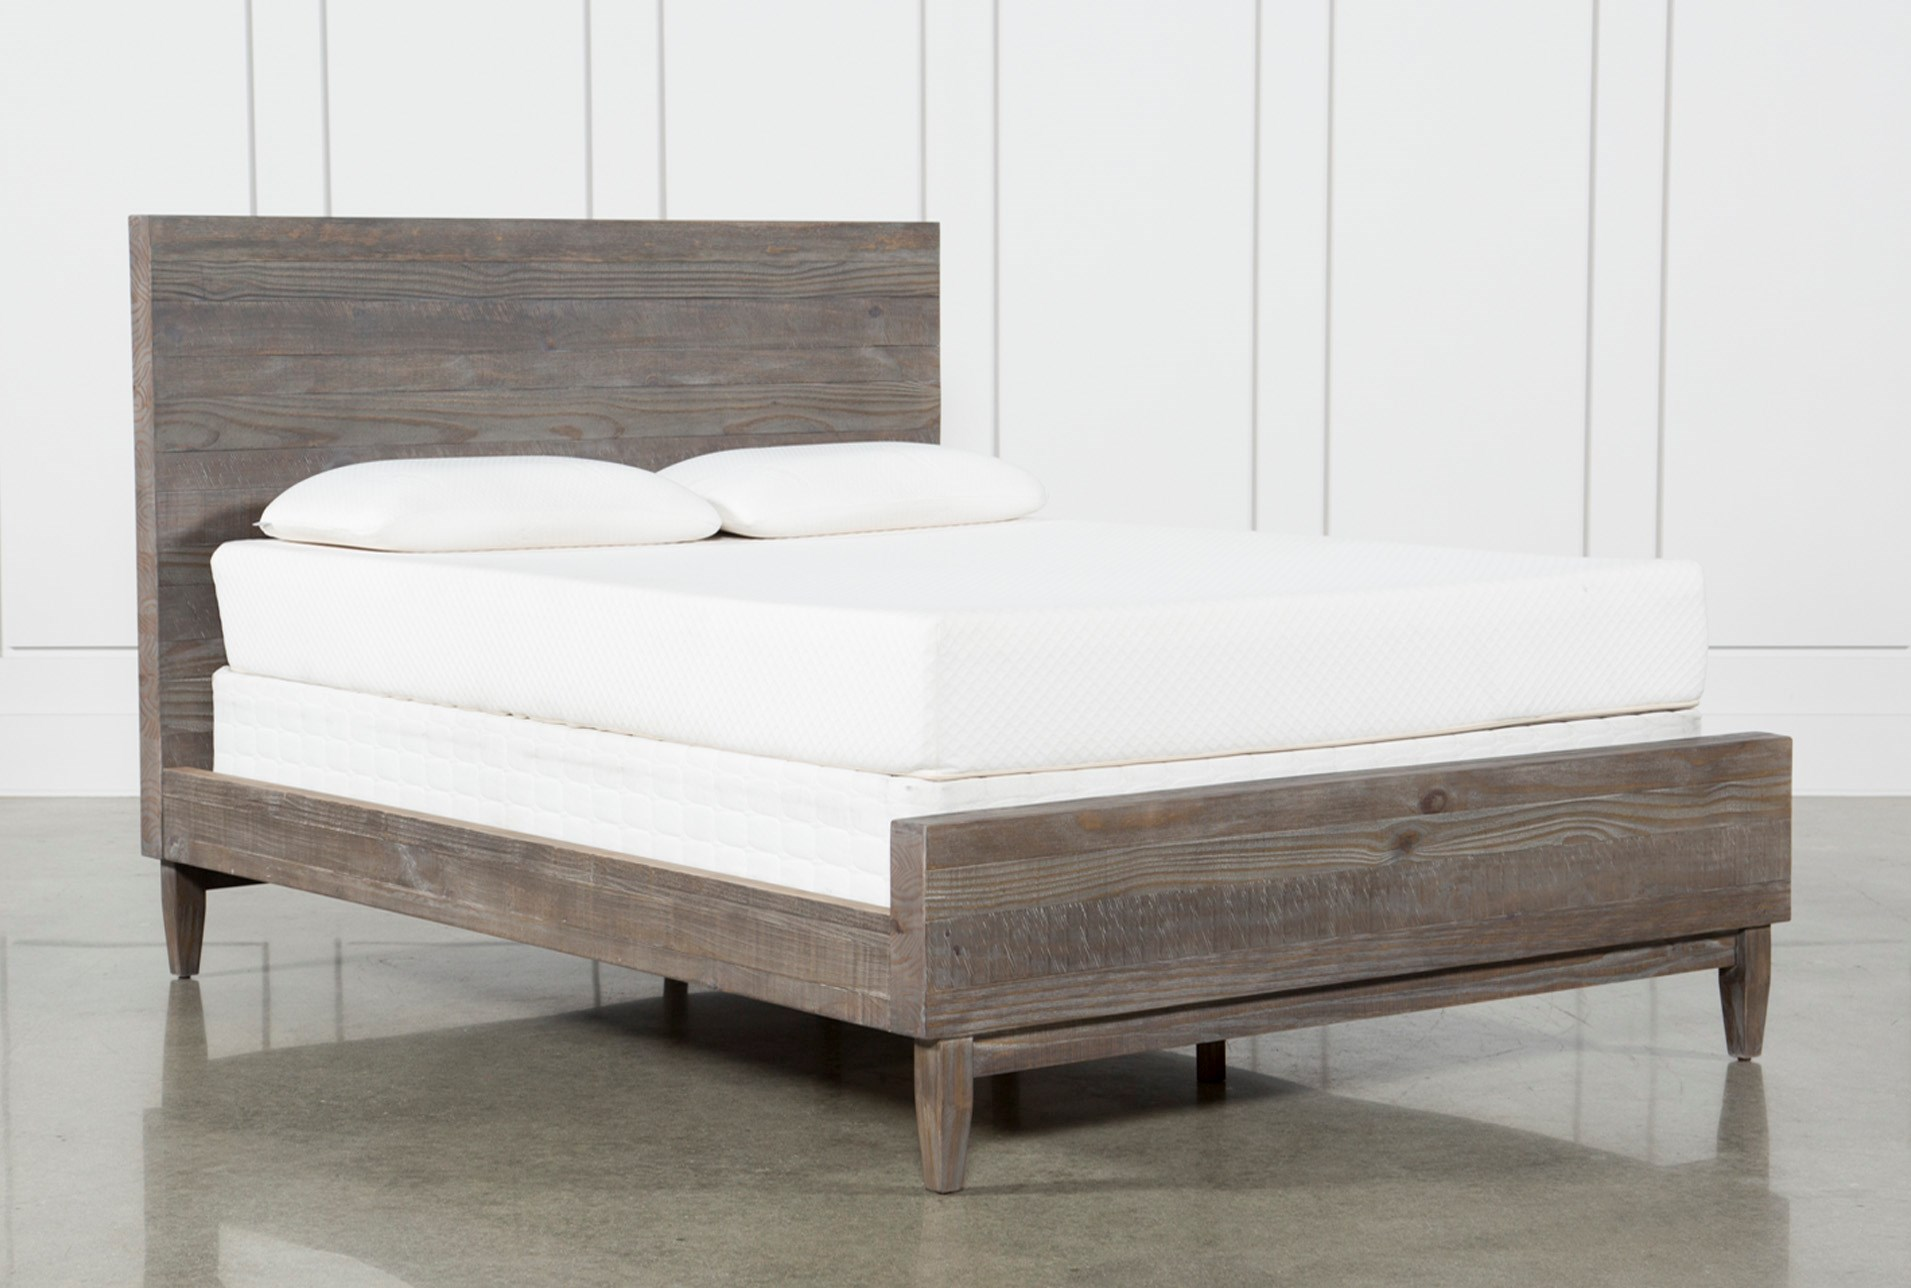 Ashton california king platform bed qty 1 has been successfully added to your cart